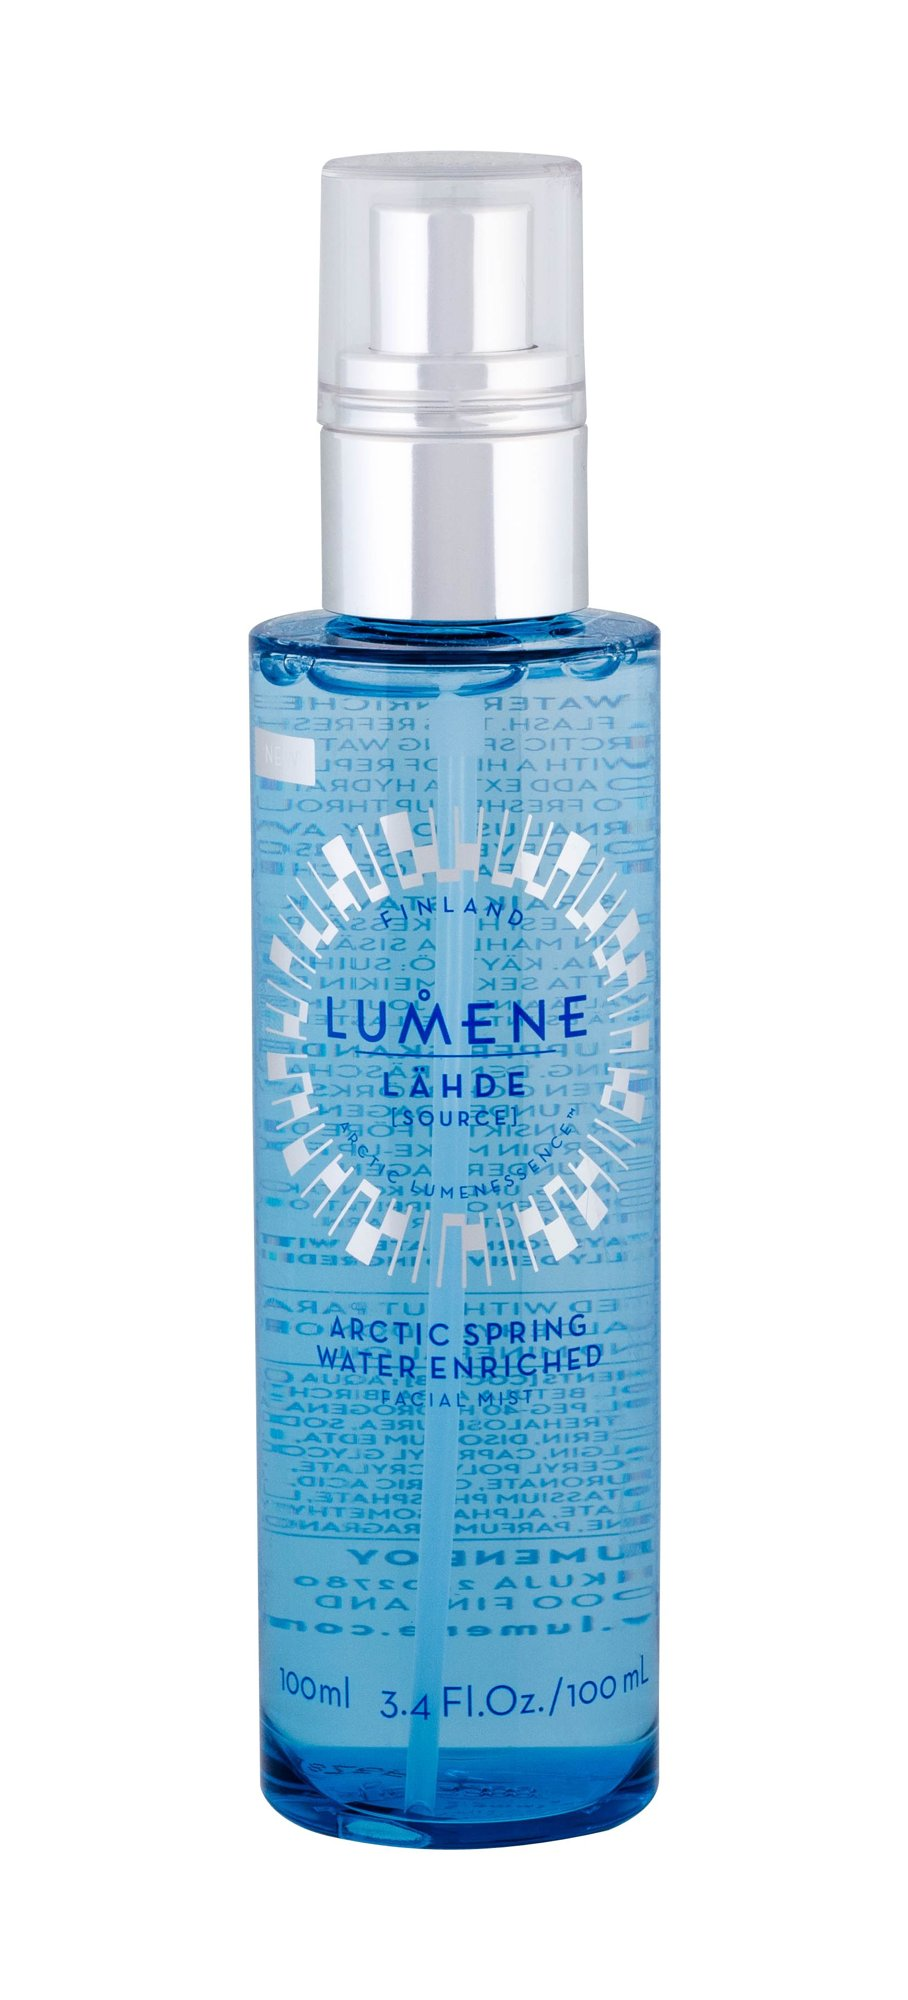 Lumene Lahde Facial Lotion 100ml  Arctic Spring Water Enriched